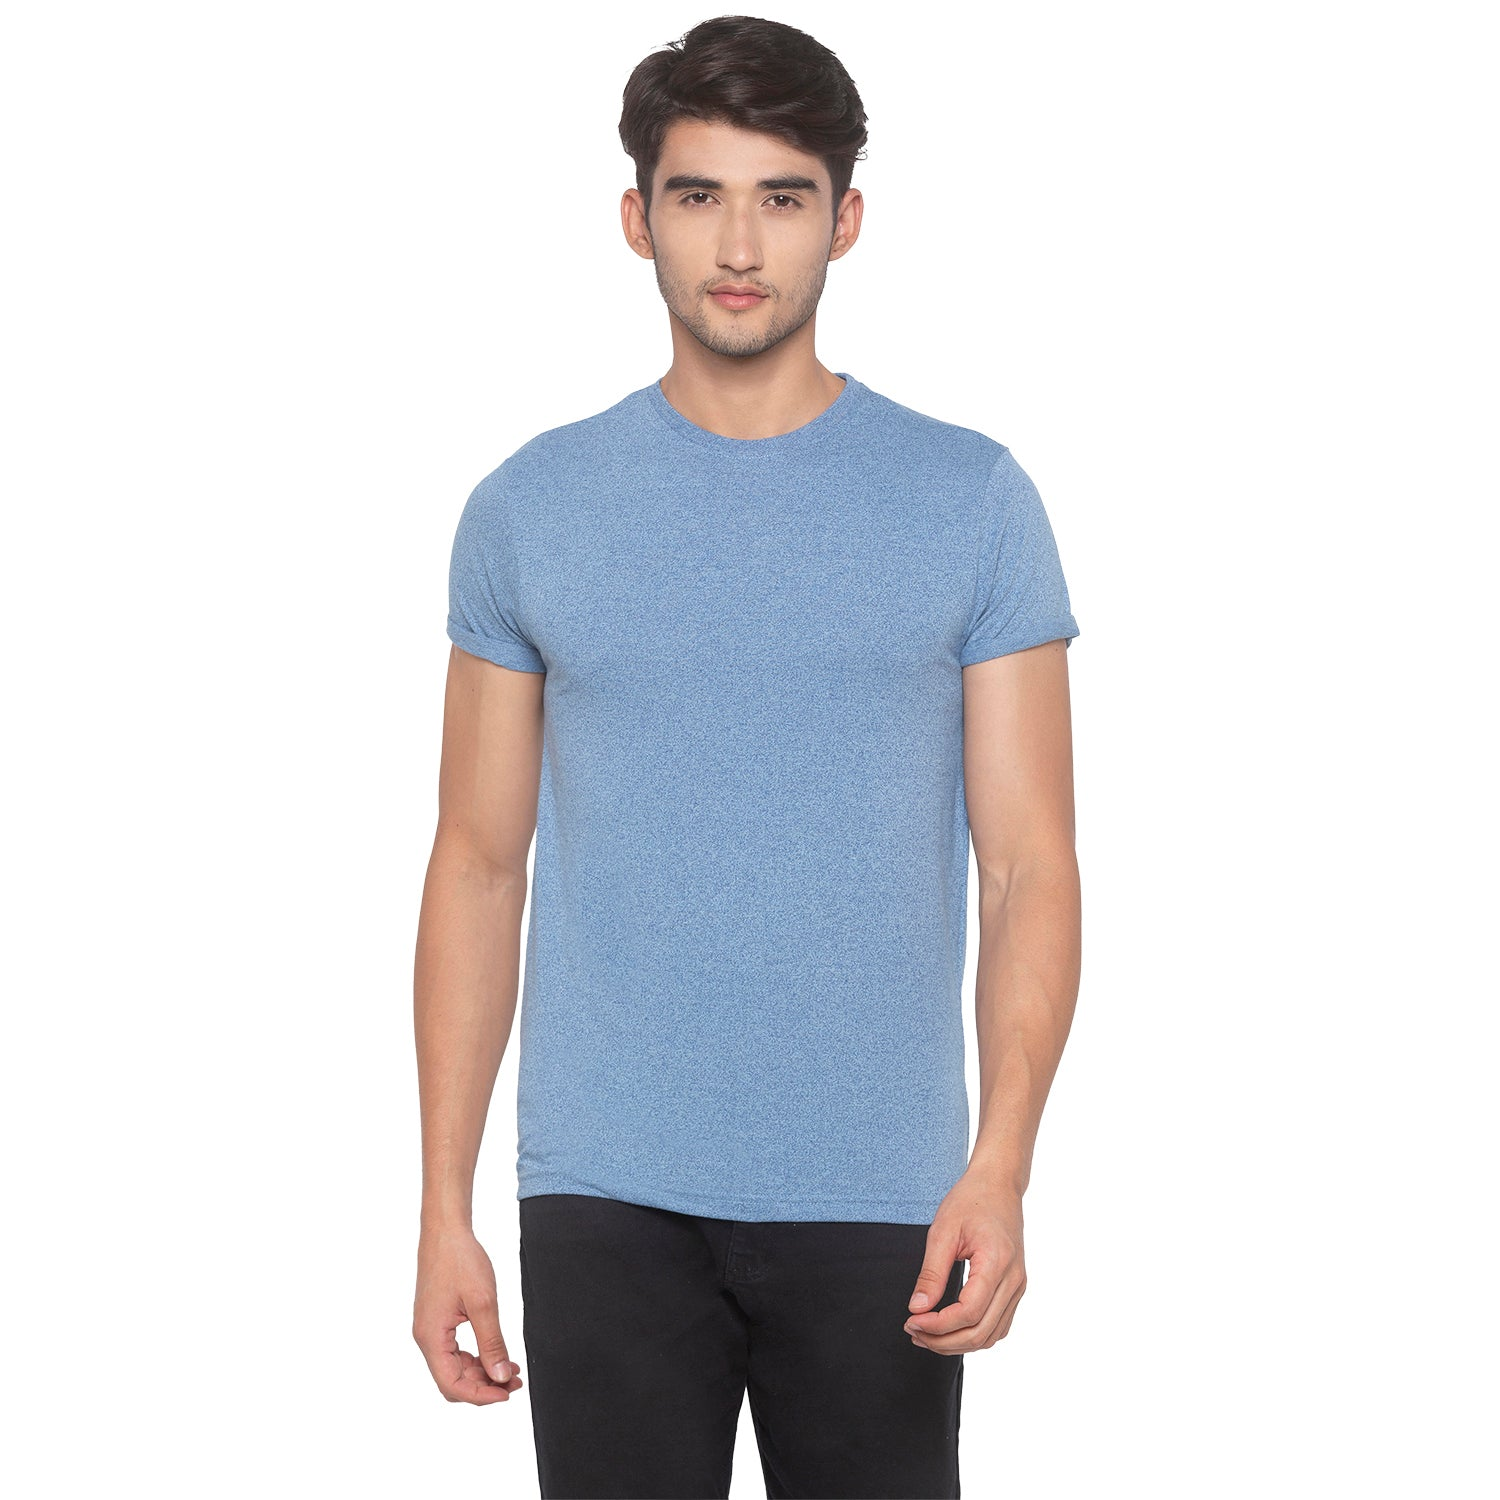 Indigo Blue Solid T-Shirt-1